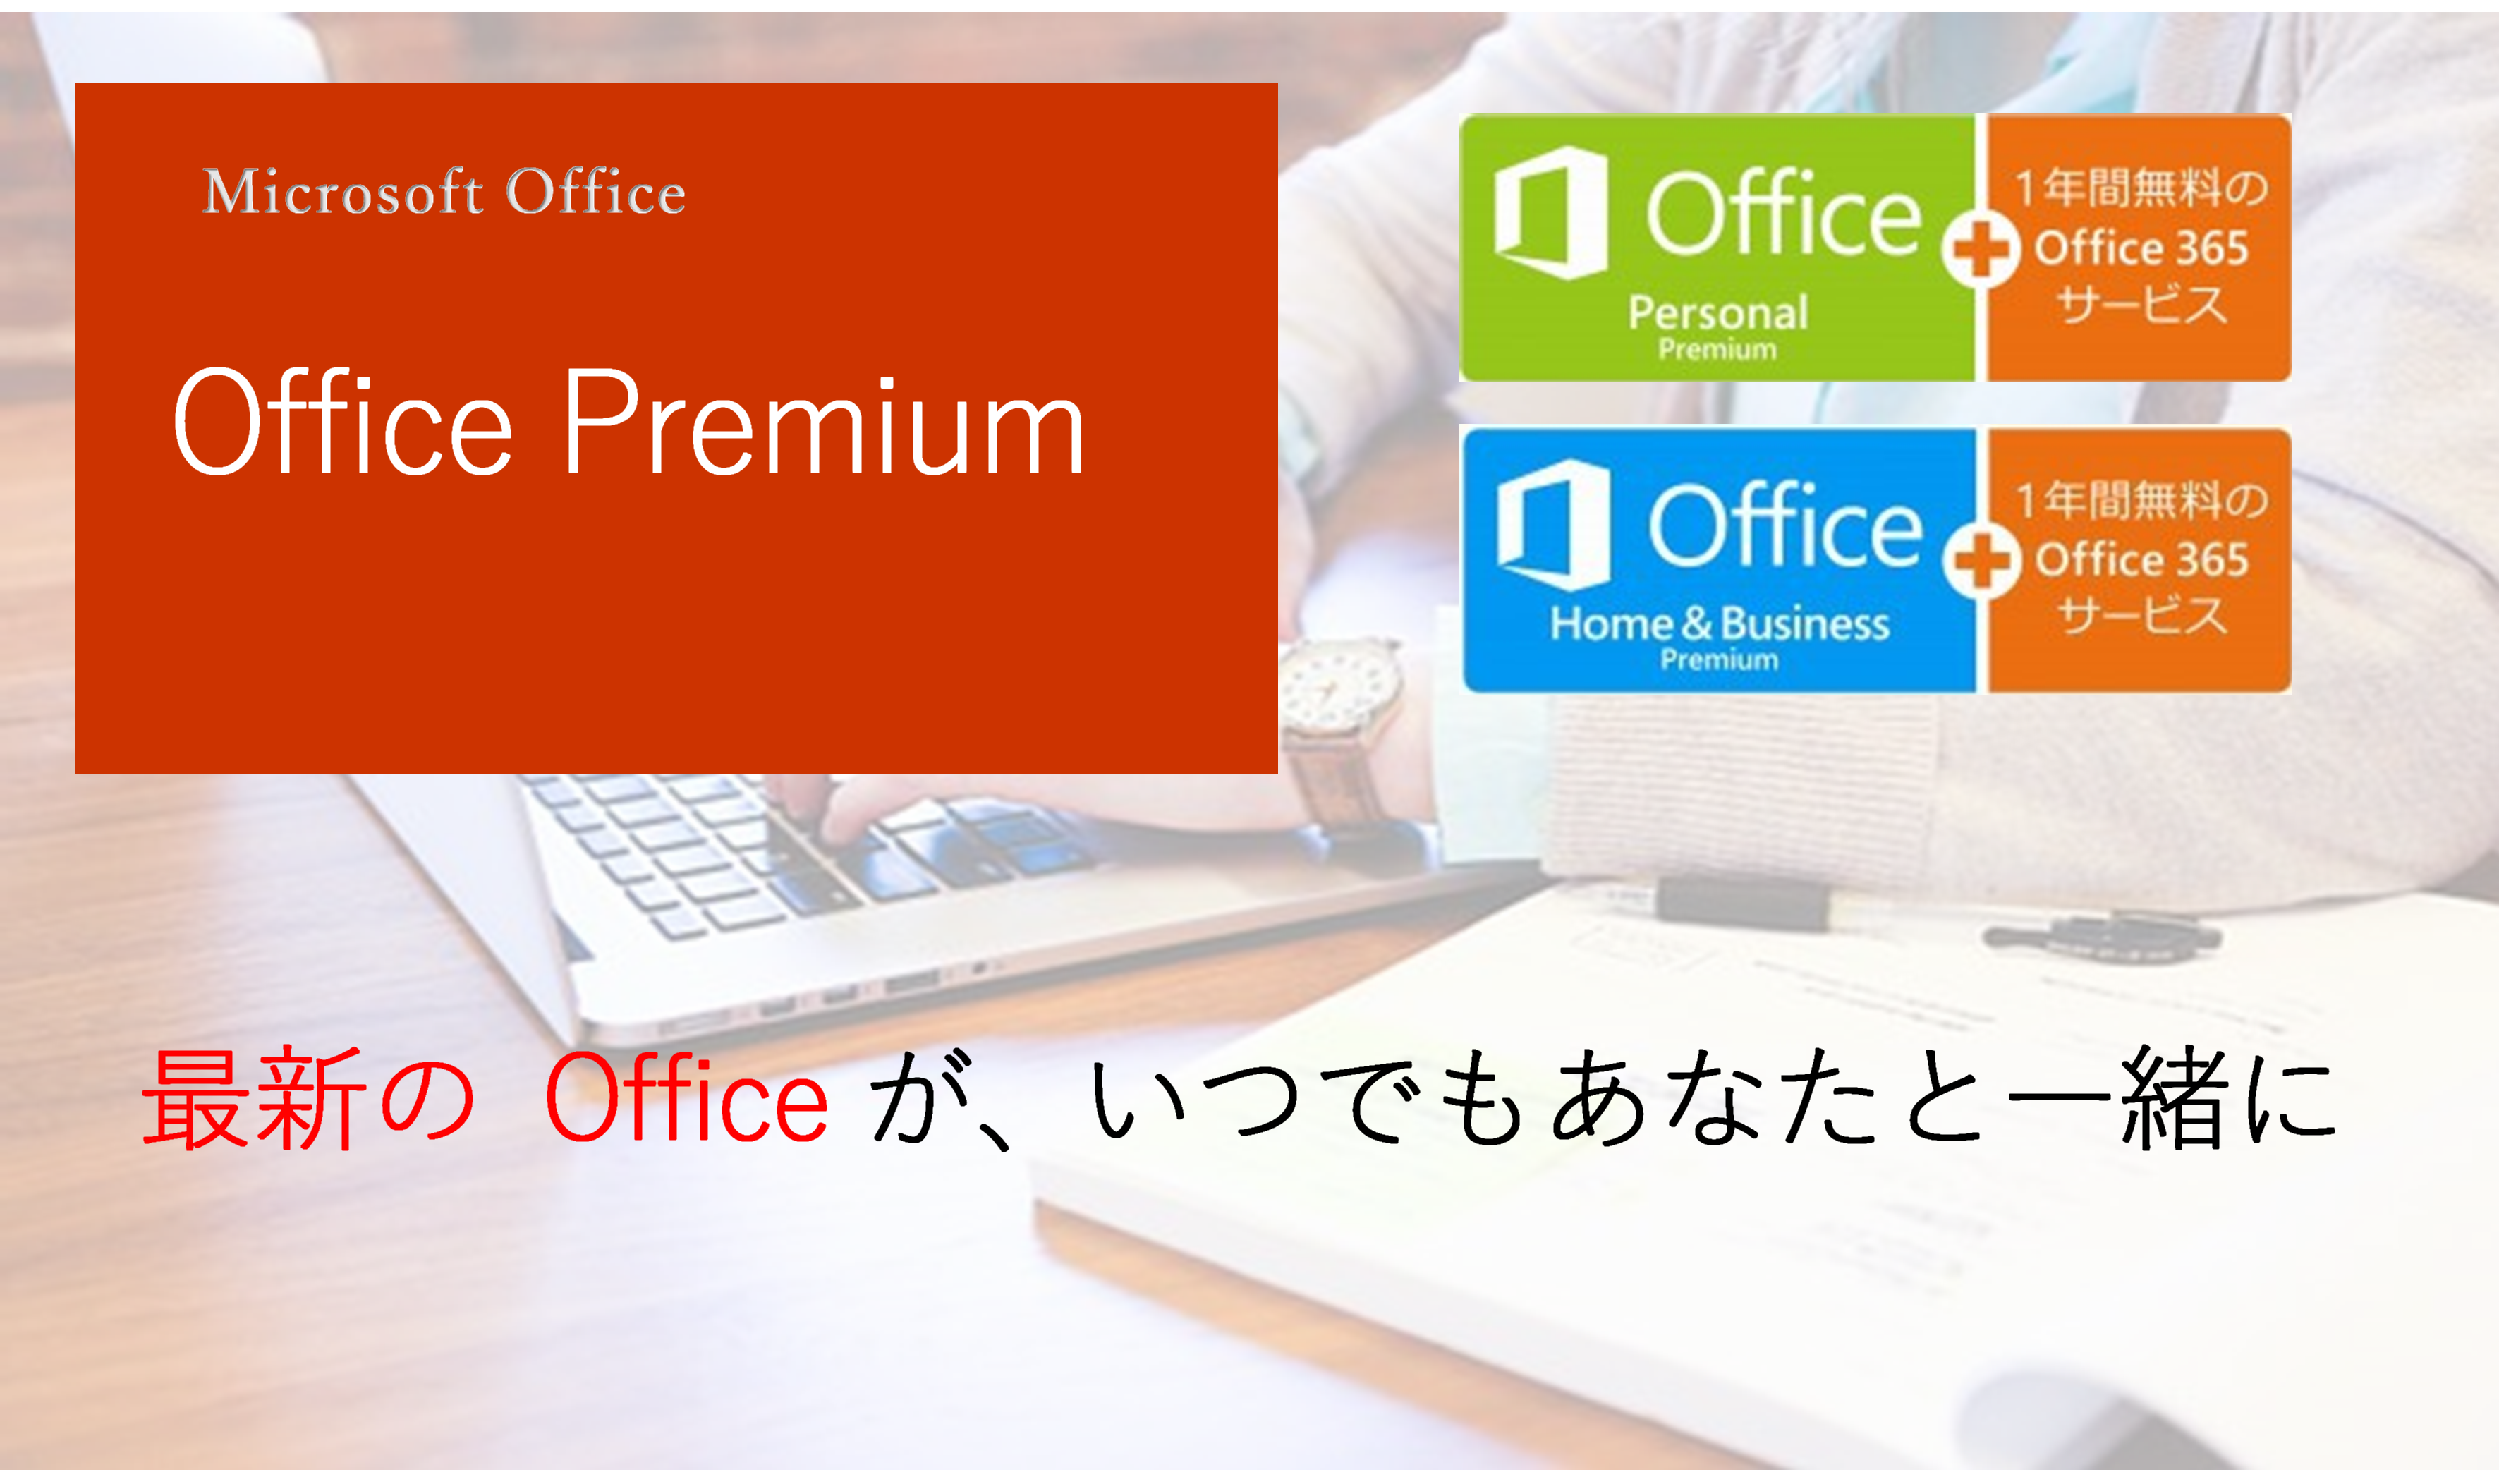 Office Home & Business Premium とはなんですか?